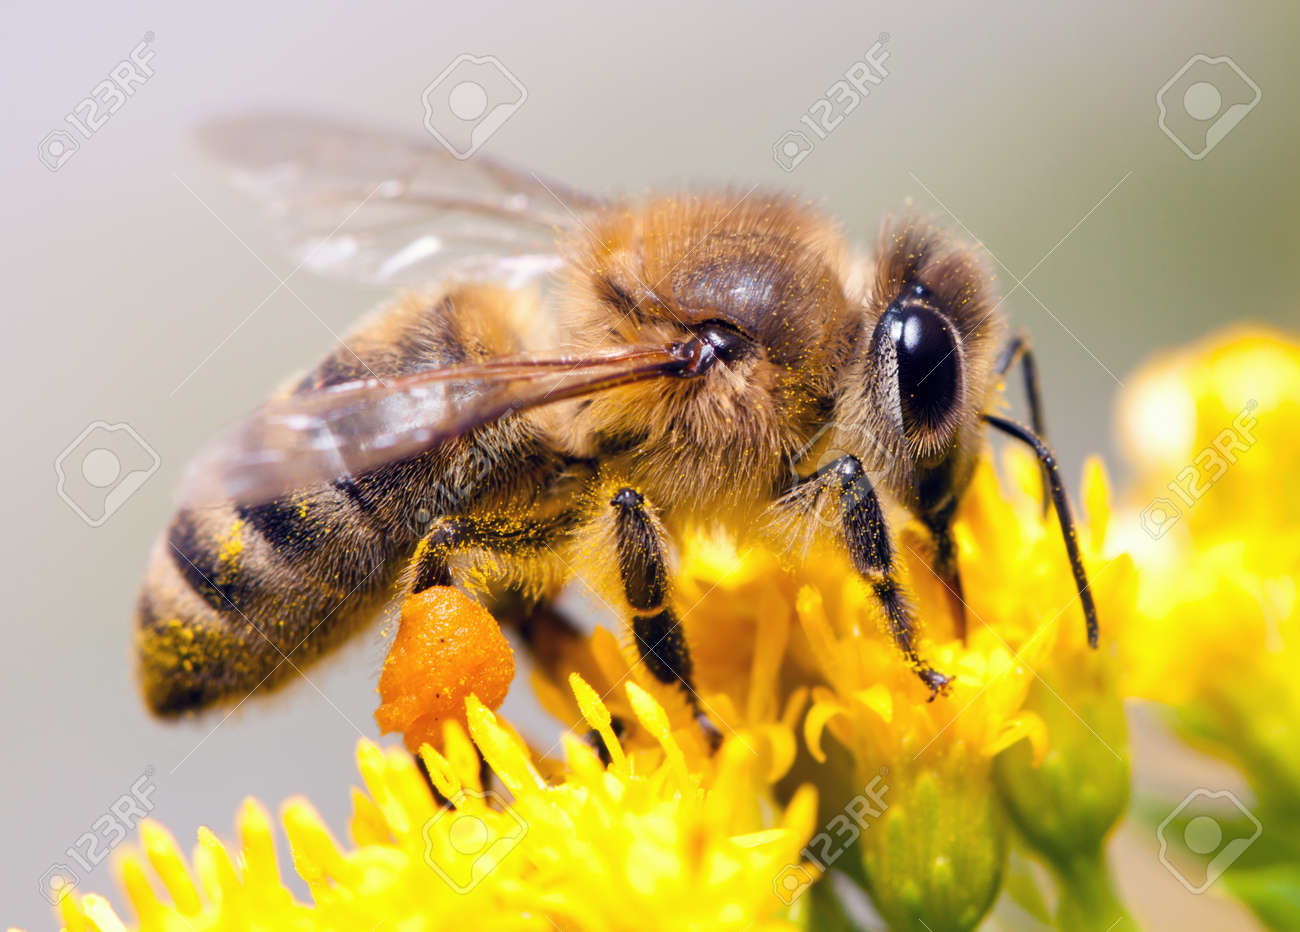 Bees collecting nectar from flower Stock Photo - 8703067